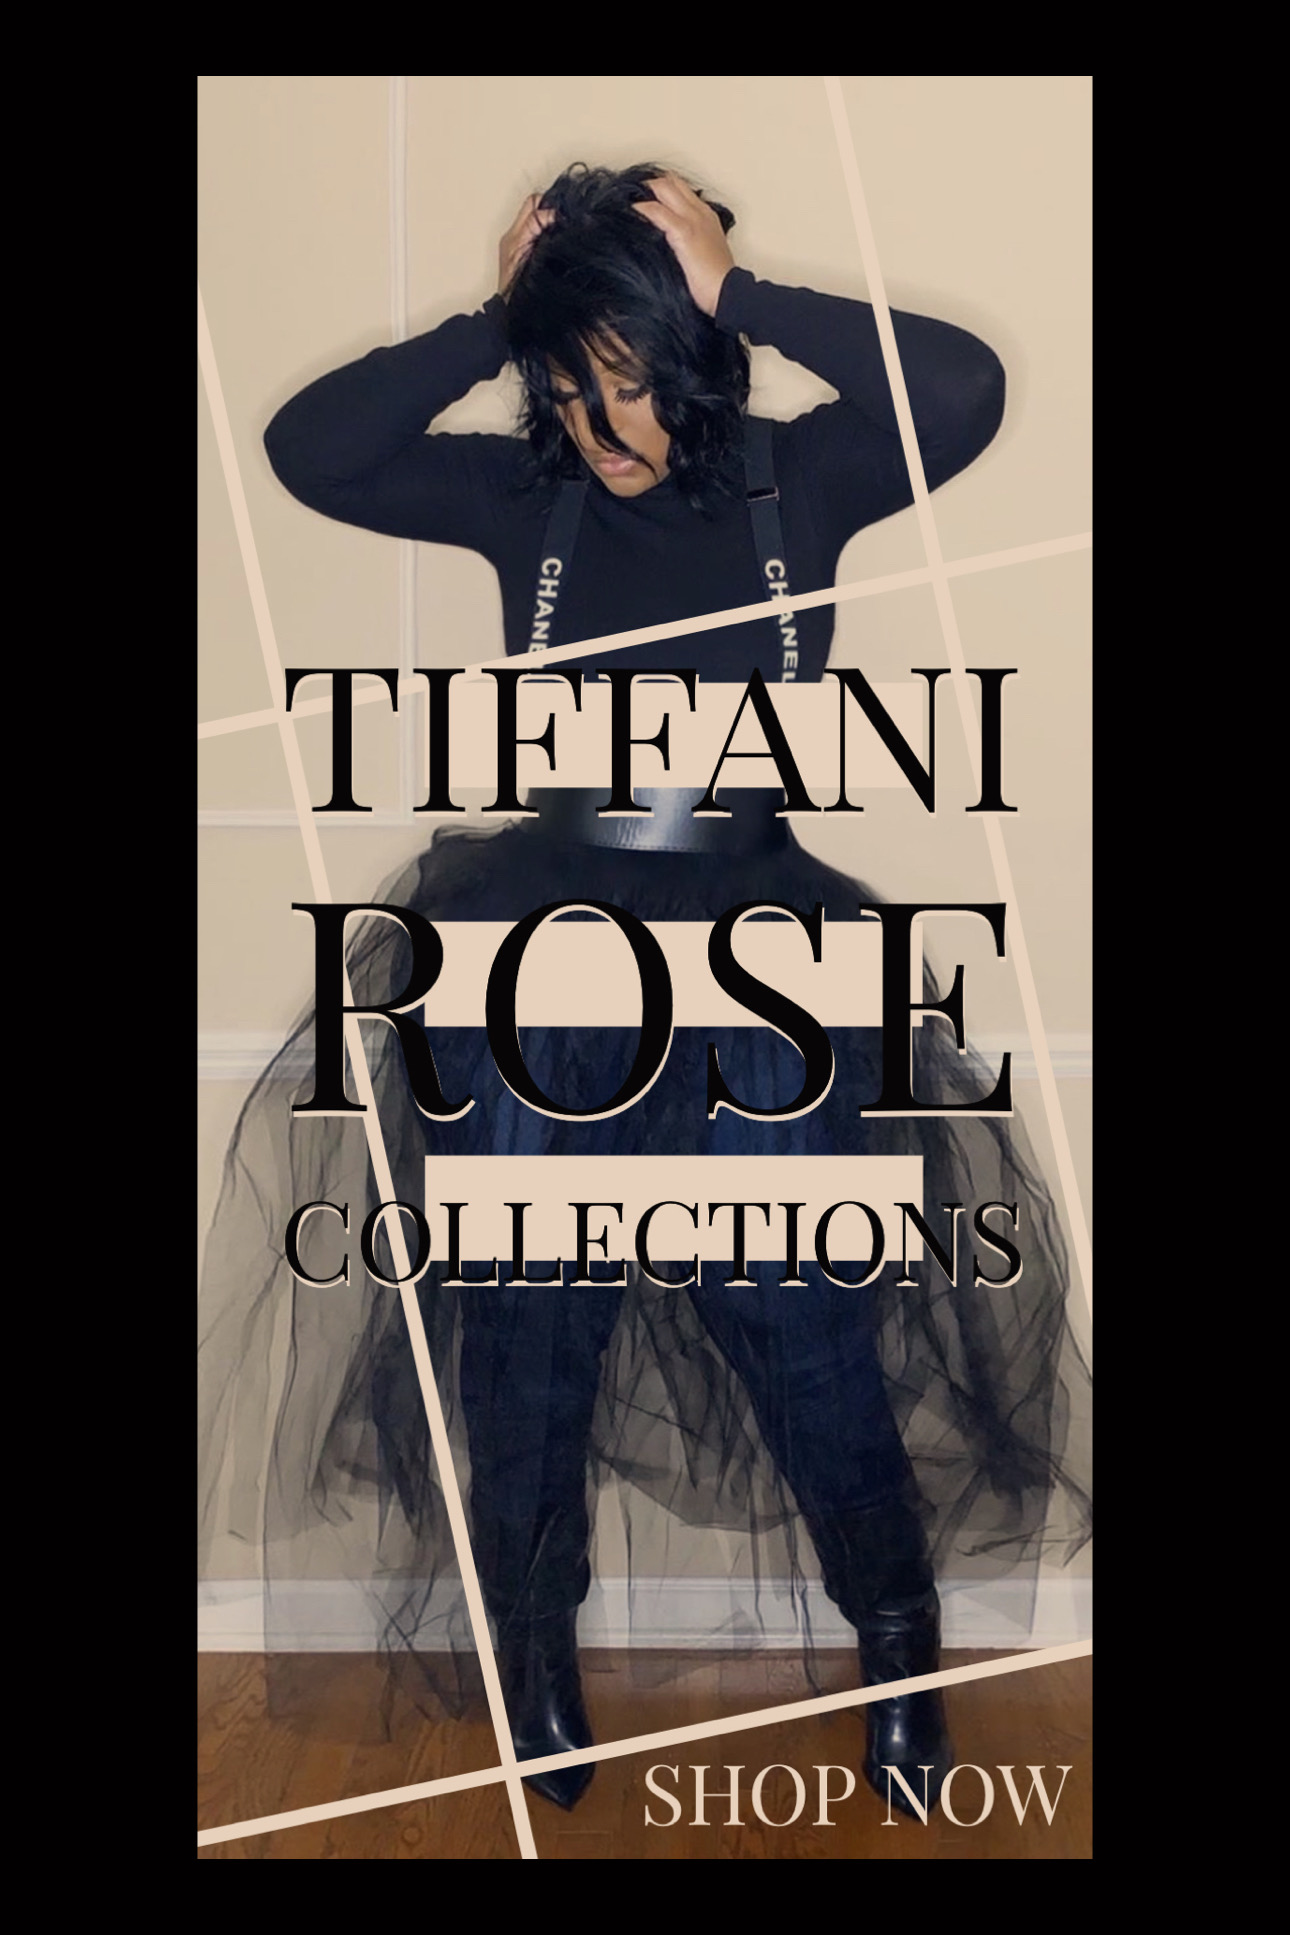 Tiffanirosecollections